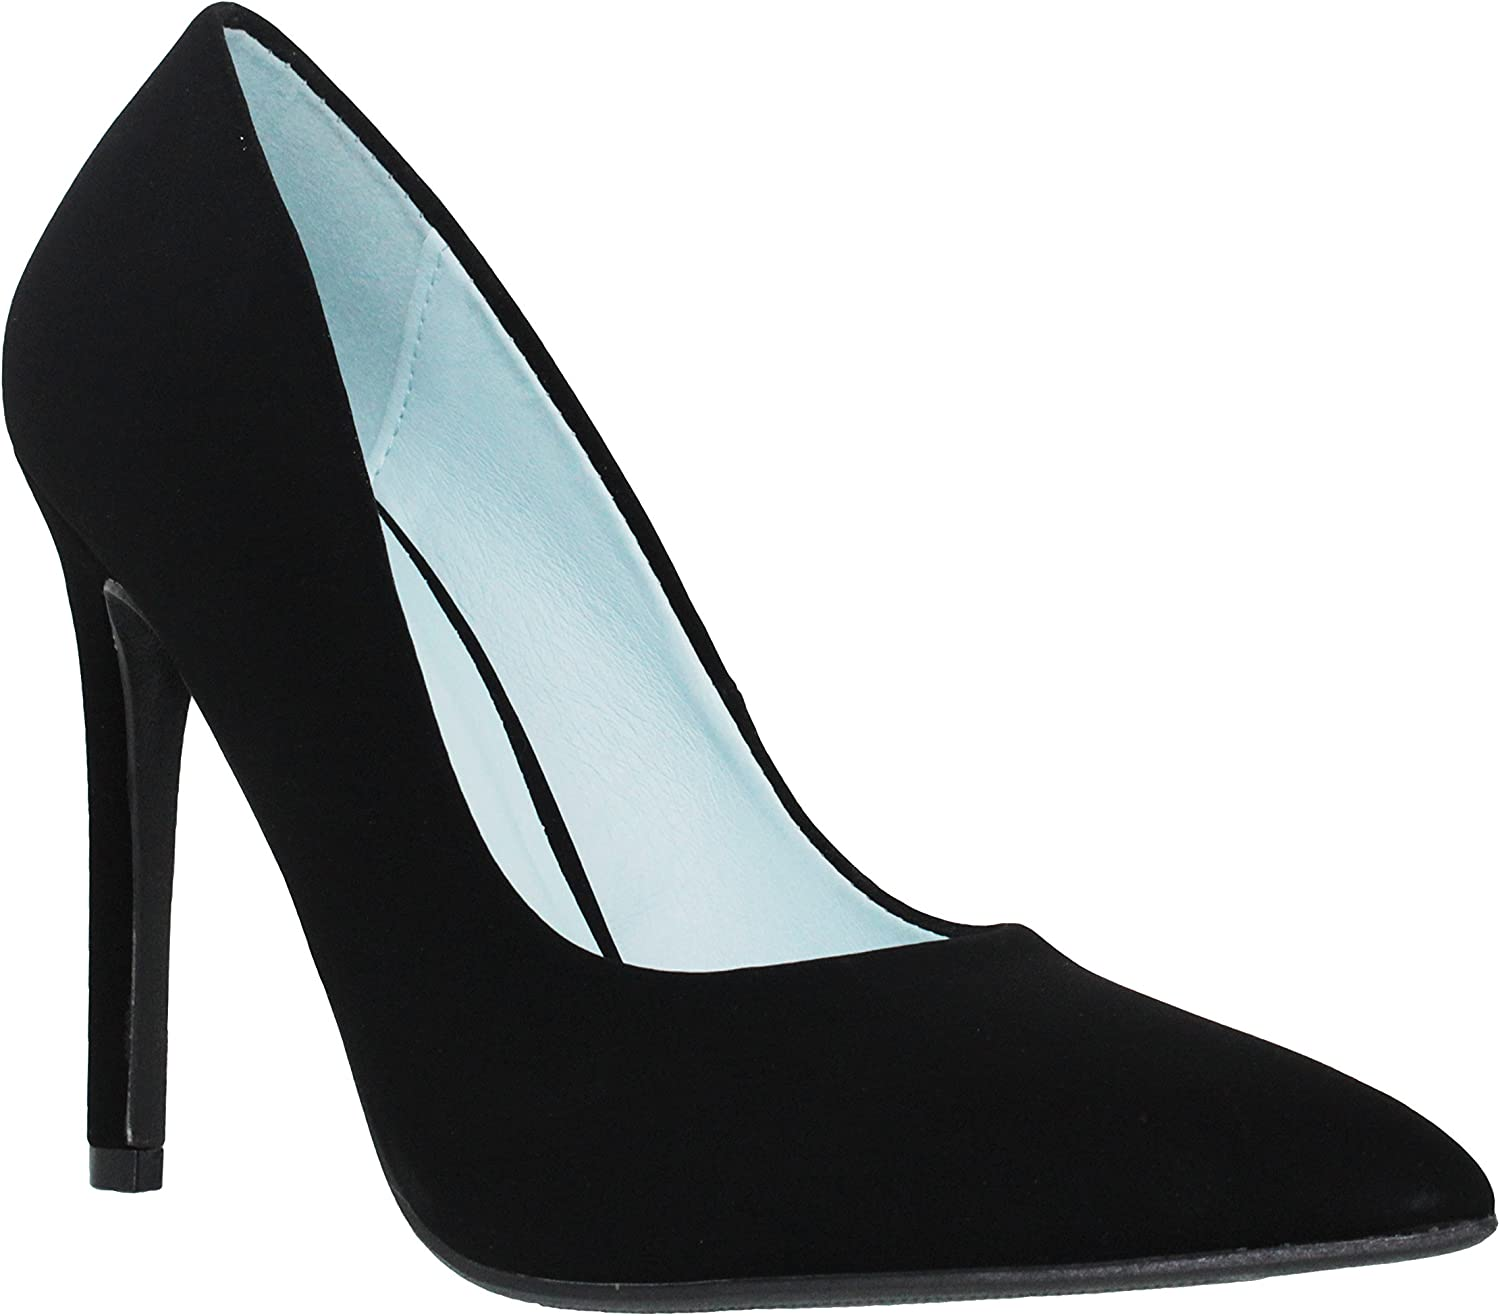 MVE Shoes Mid Finally Max 88% OFF popular brand Heel Shiny Strap Pumps Pointed Ankle